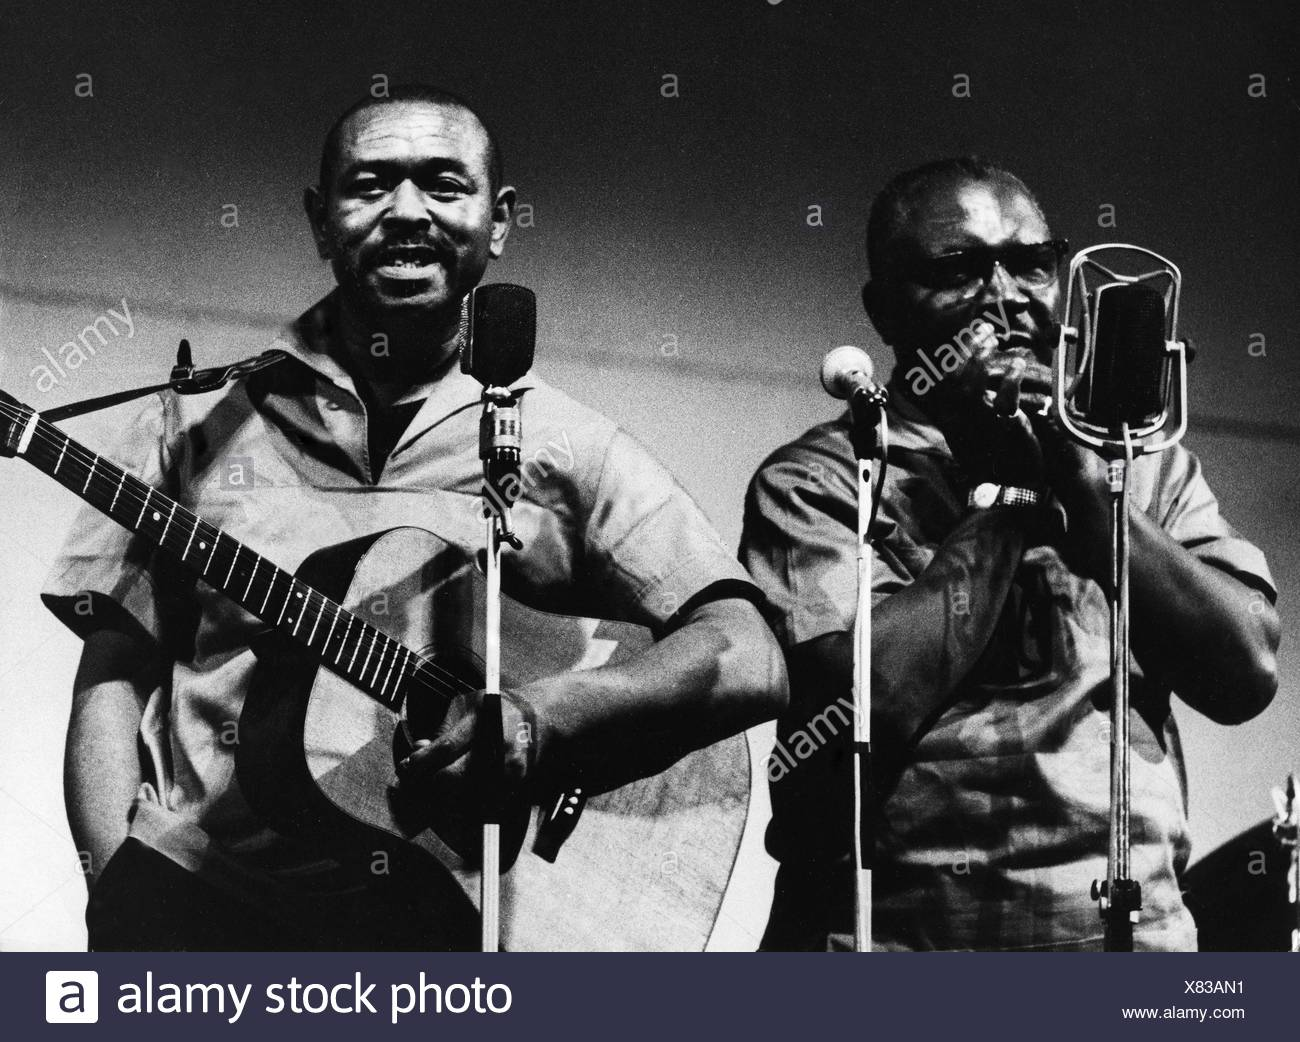 McGhee, Walter Brown 'Brownie', 30.11 1915 - 16.2.1996, American musician and singer, with Sonny Terry, performance in Munich, 1960s, , Additional-Rights-Clearances-NA - Stock Image